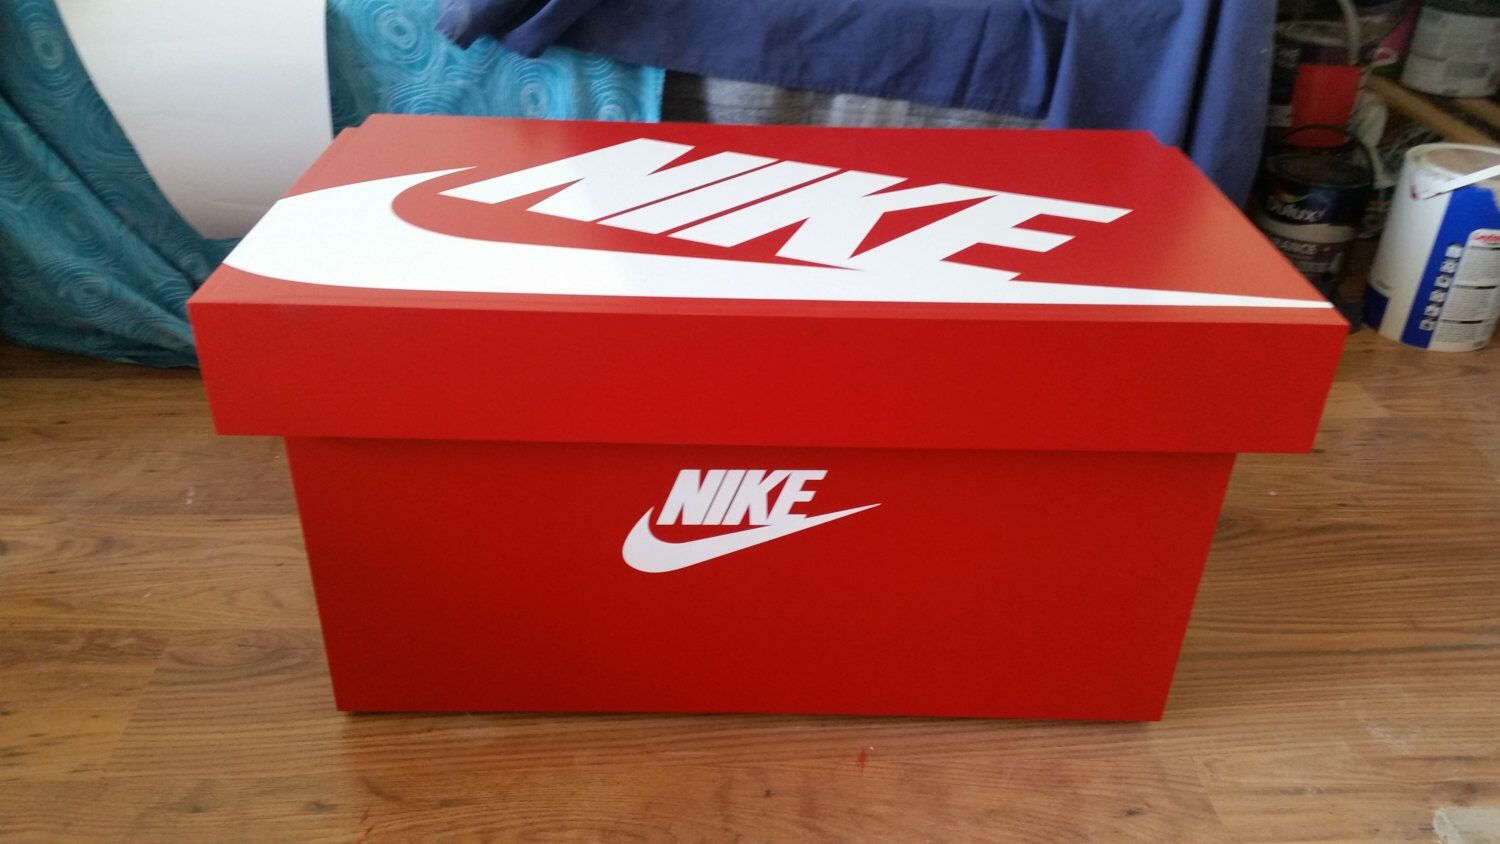 3bd4a96cc920c XL Trainer ShoeStorage Box, Nike Giant Sneaker Box (fits 6-8no pairs ...